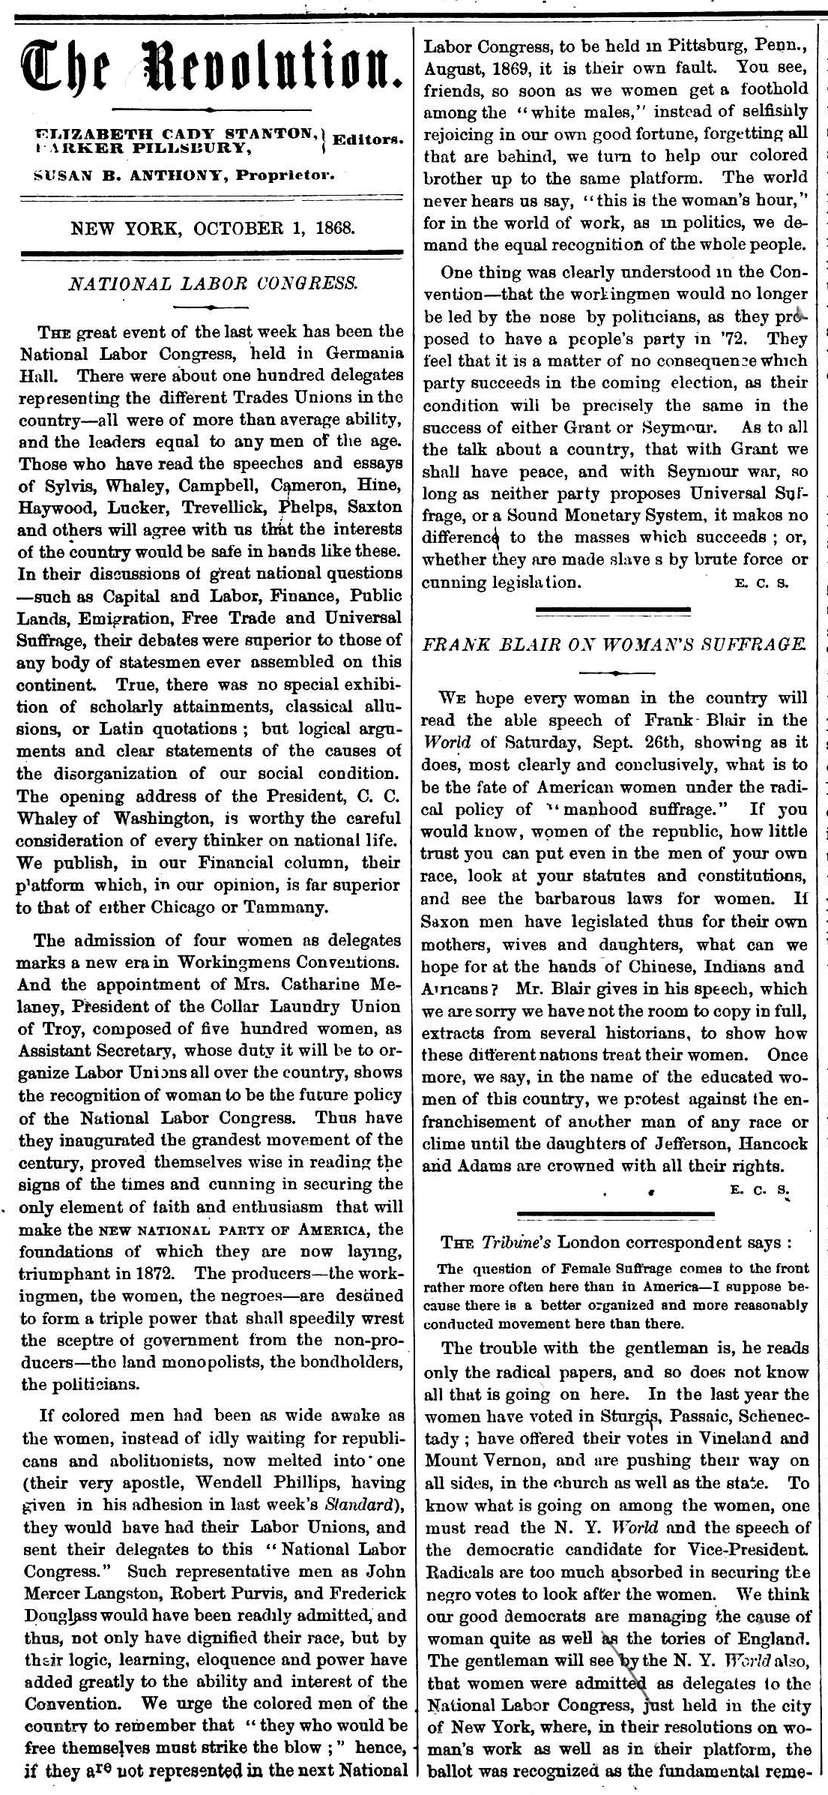 The-Revolution-Susan-B.-Anthony's-Suffrage-Women's-Rights-Newspaper-October-1,-1868